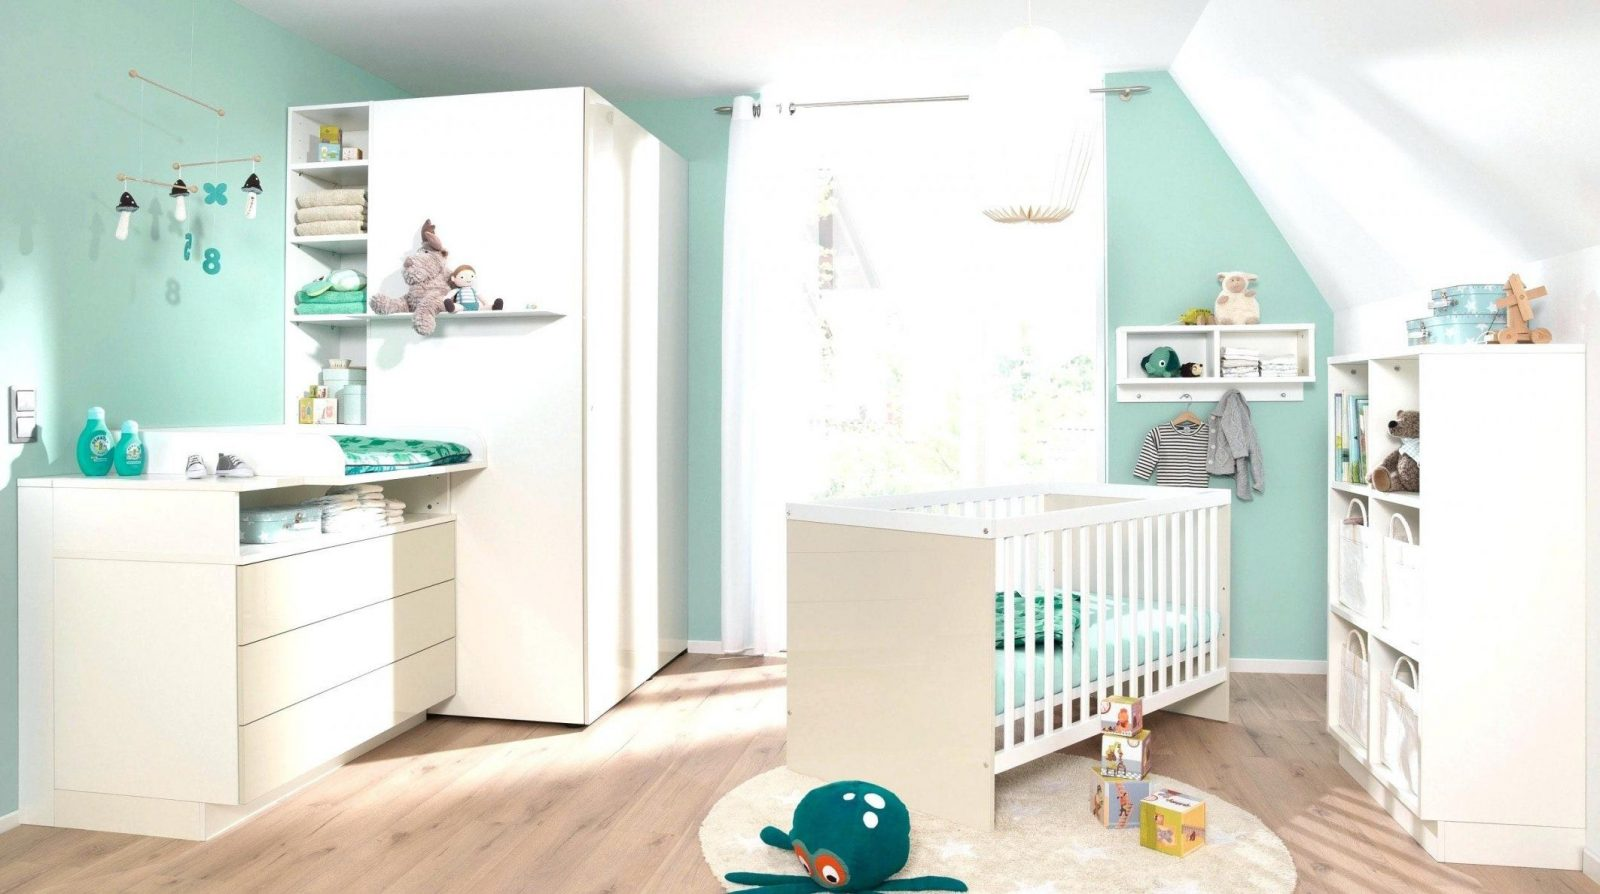 deko ideen wandgestaltung sch n kinderzimmer junge wandgestaltung von kinderzimmer deko ideen. Black Bedroom Furniture Sets. Home Design Ideas